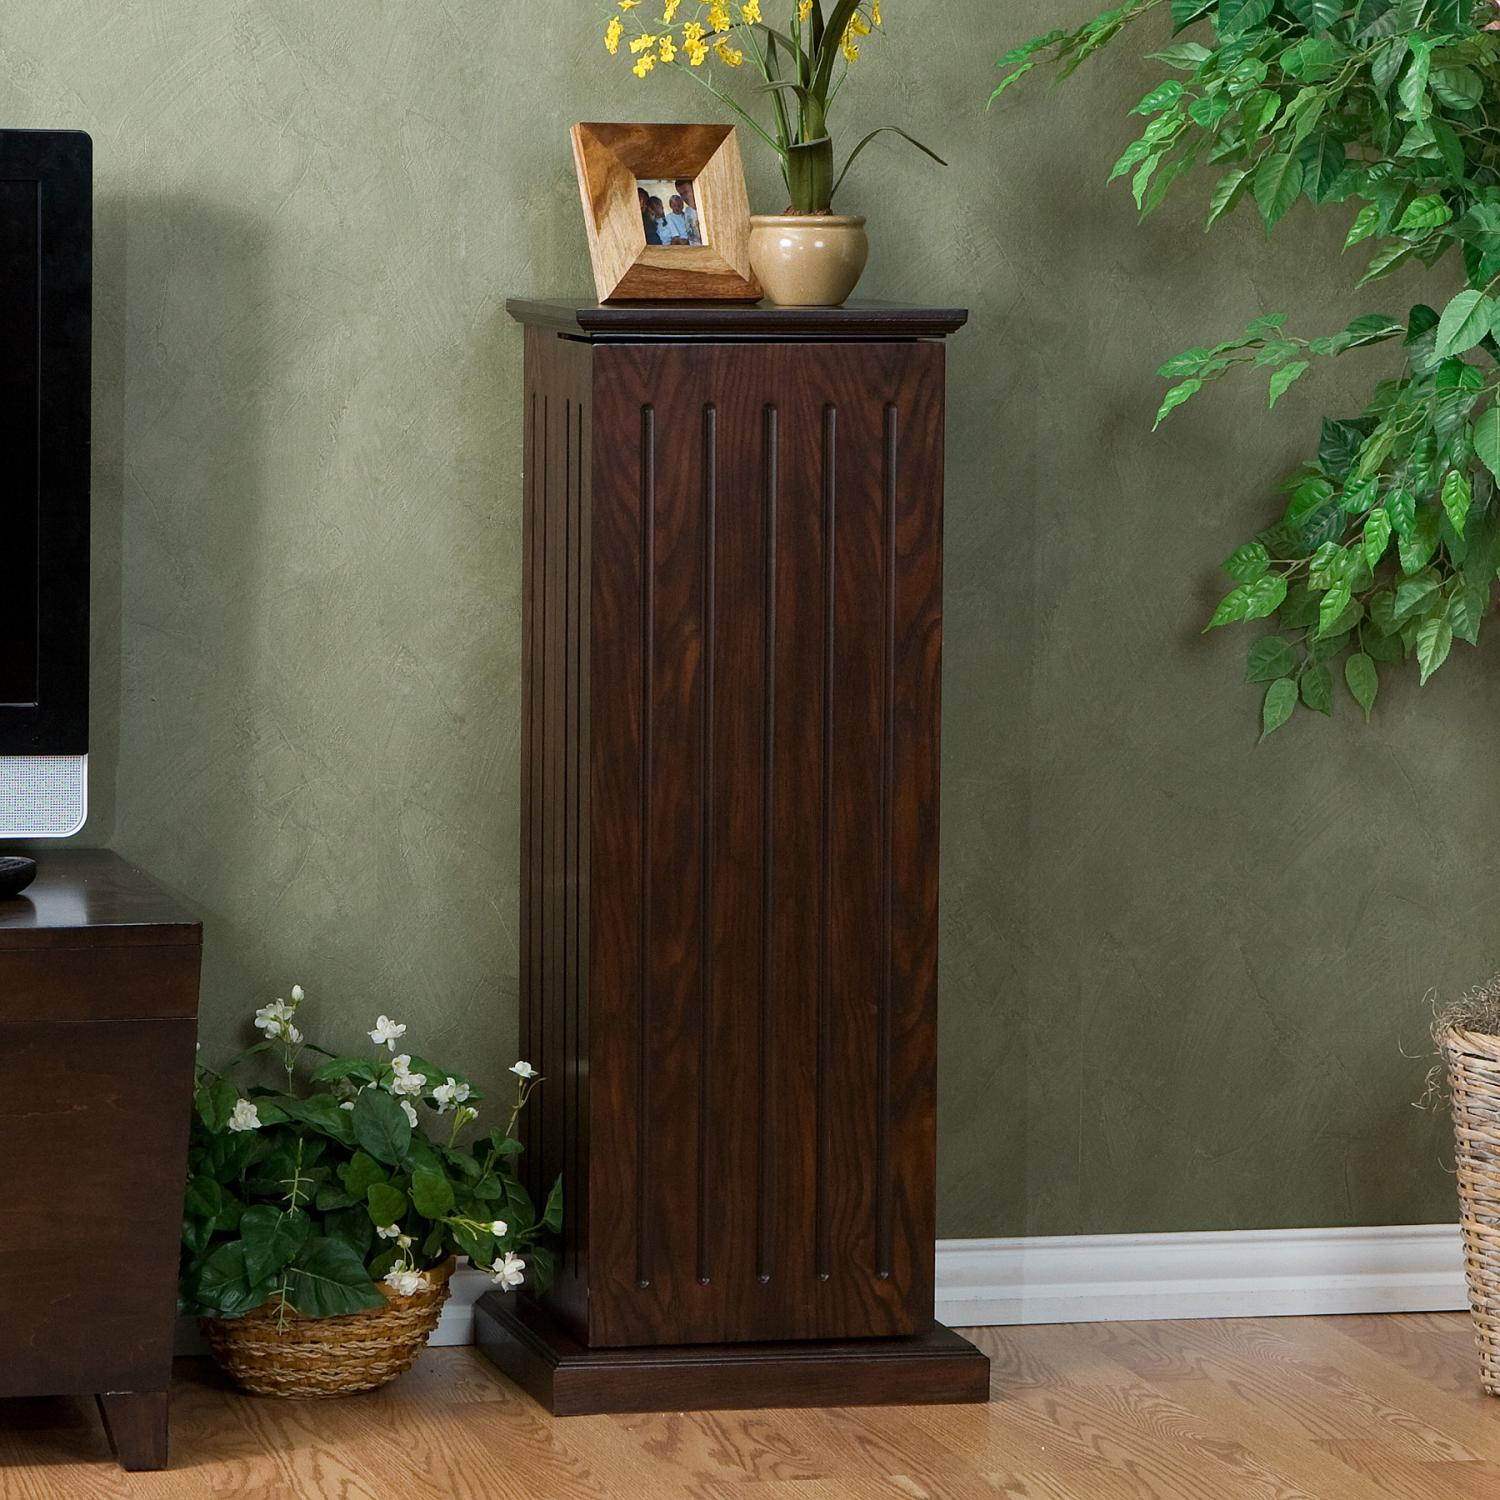 MS9213 jpg. Solid Oak Cabinet For DVD S  Vhs Tapes  Books And More